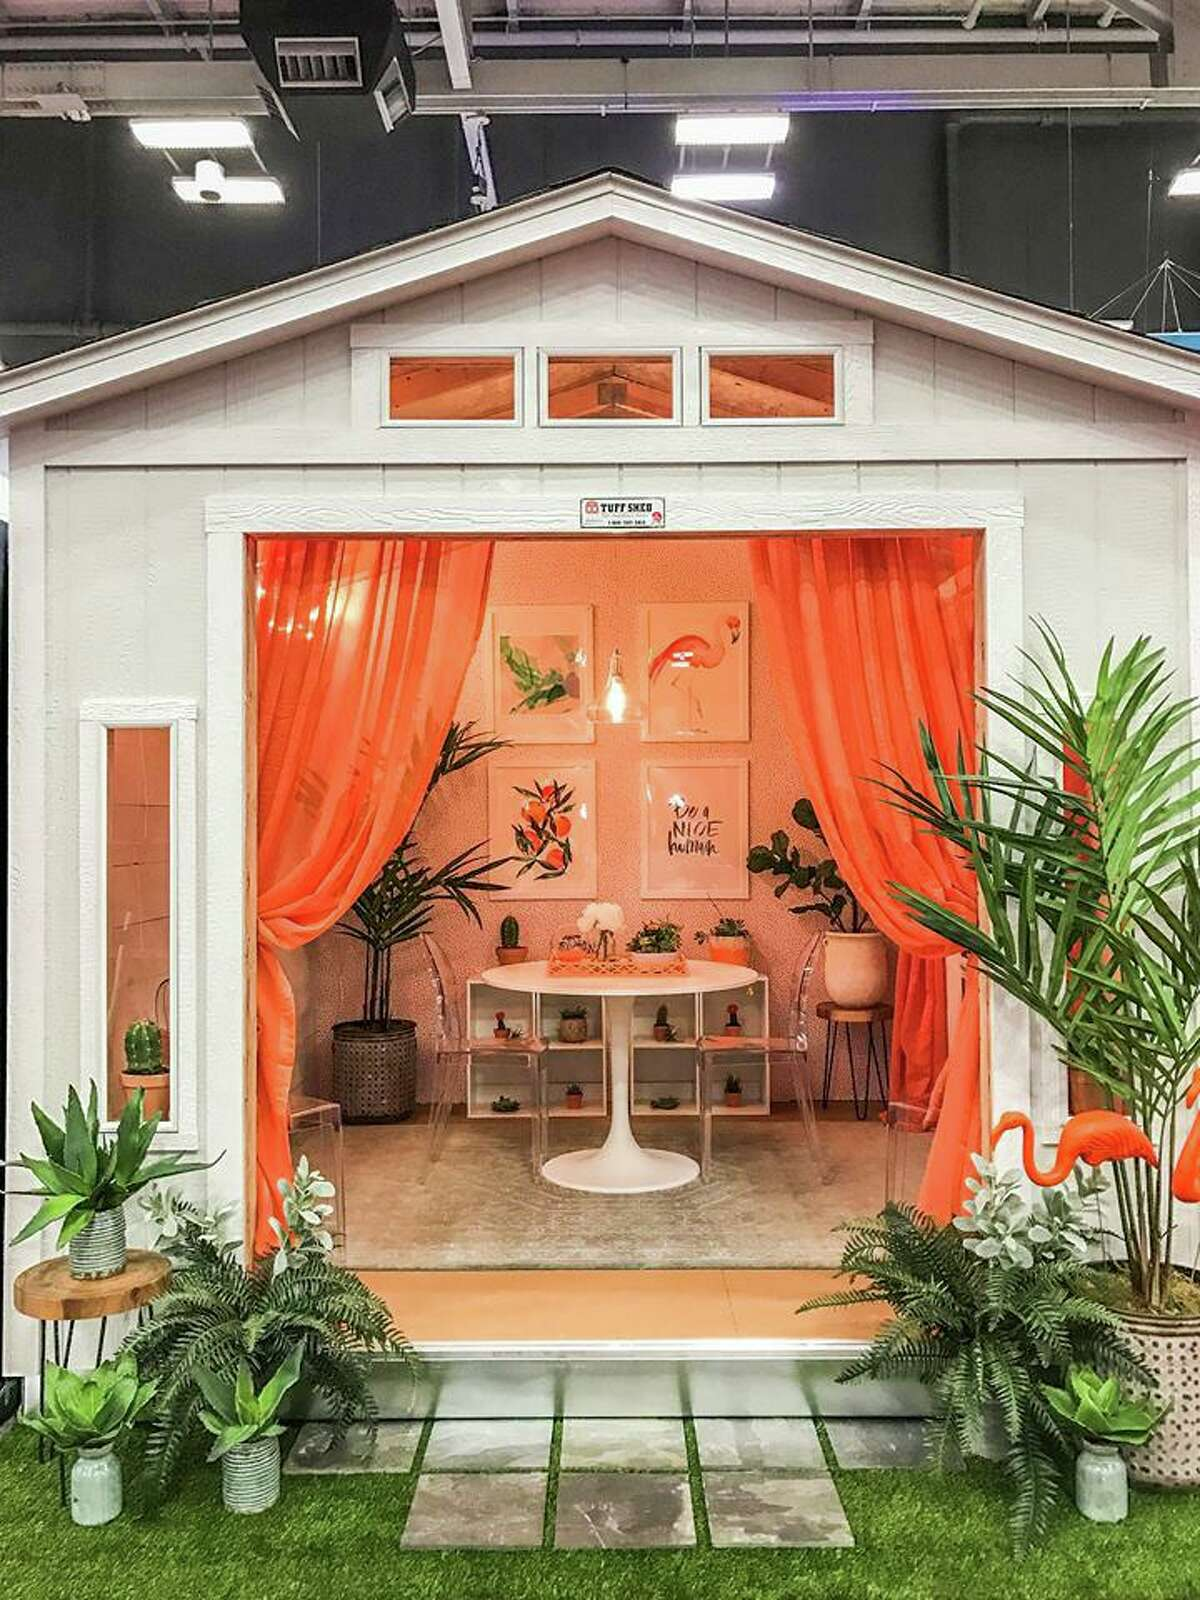 The 2019 Fall Katy Home & Garden Show will feature the auction of a She Shed to benefit The Ballard House. Here is an example of a She Shed.